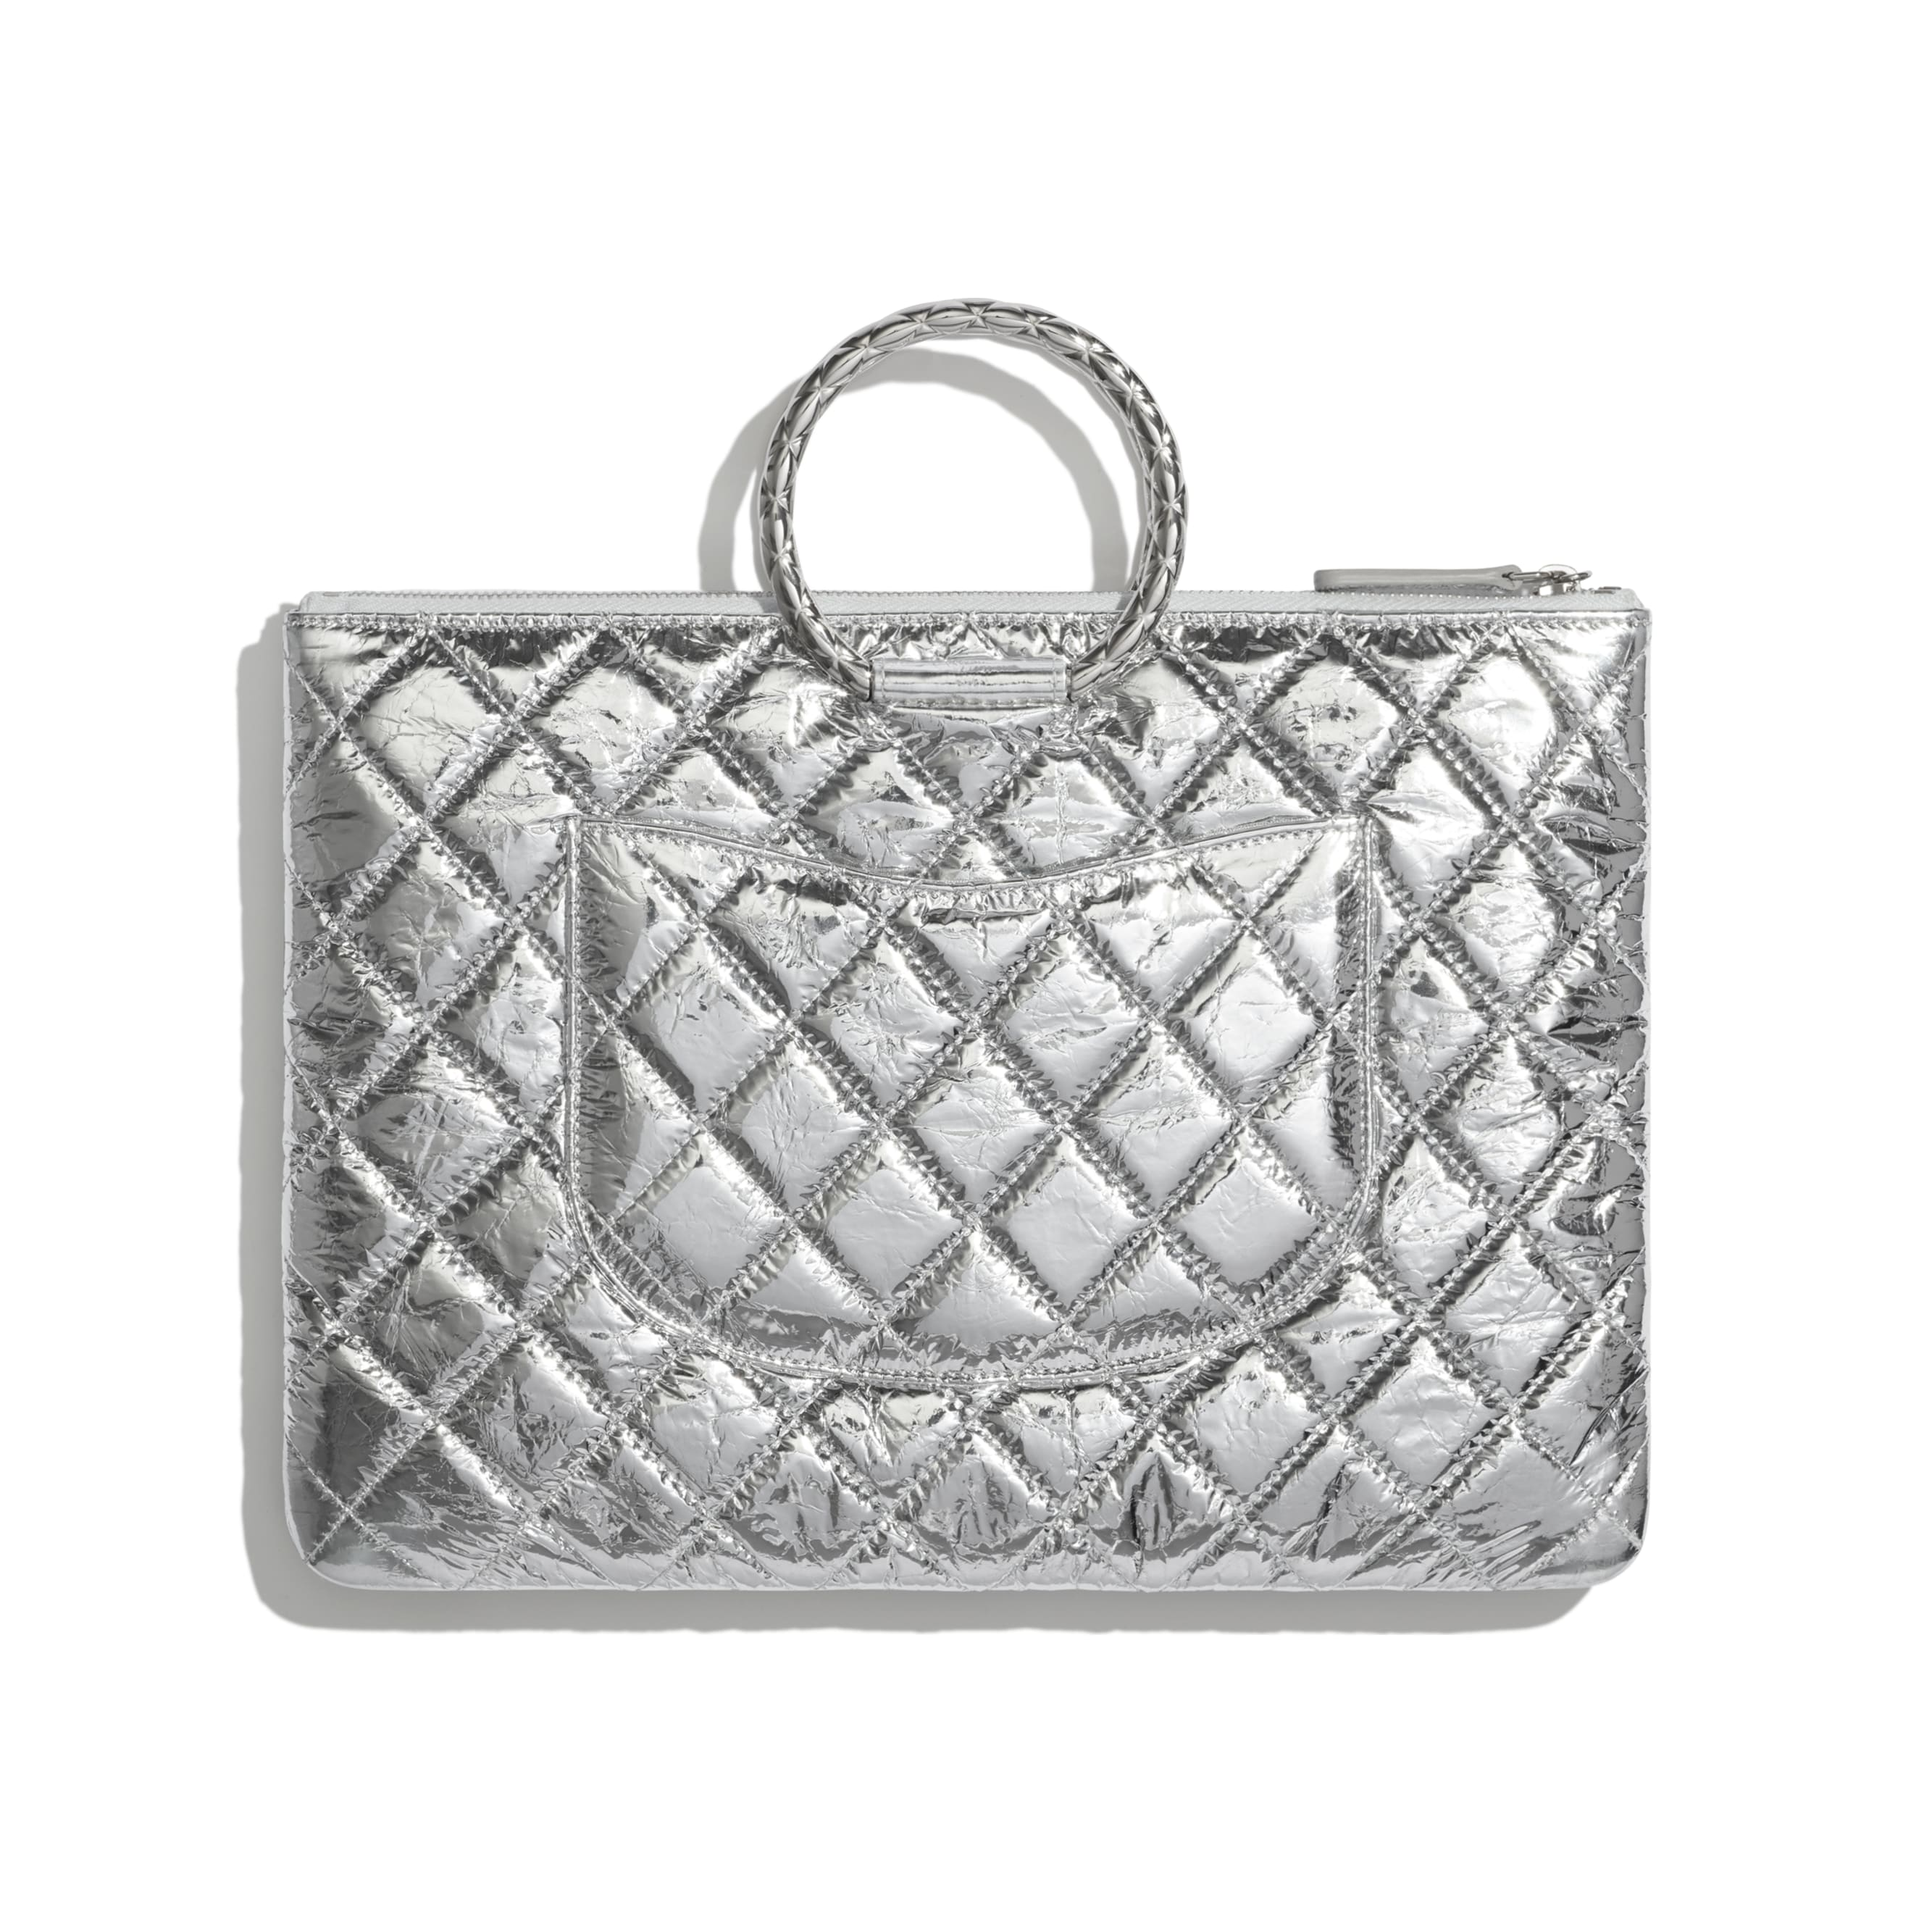 Pouch - Silver - Metallic Crumpled Goatskin & Silver-Tone Metal - CHANEL - Alternative view - see standard sized version